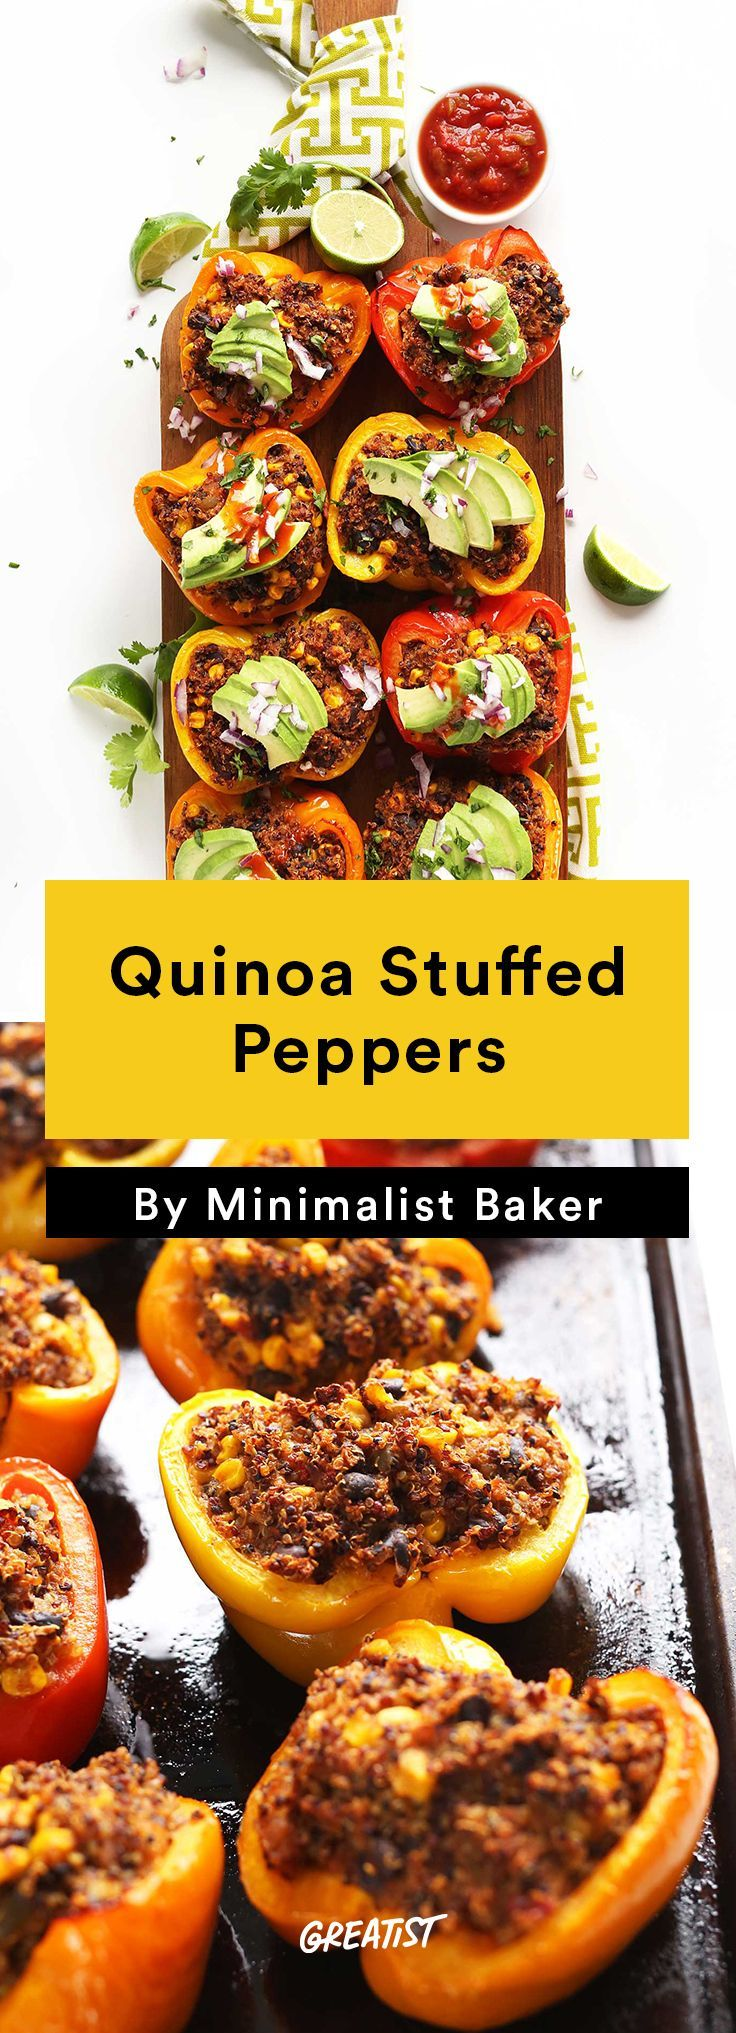 2. Quinoa Stuffed Peppers #easy #vegetarian #dinners http://greatist.com/eat/vegetarian-dinner-recipes-that-bake-in-one-pan